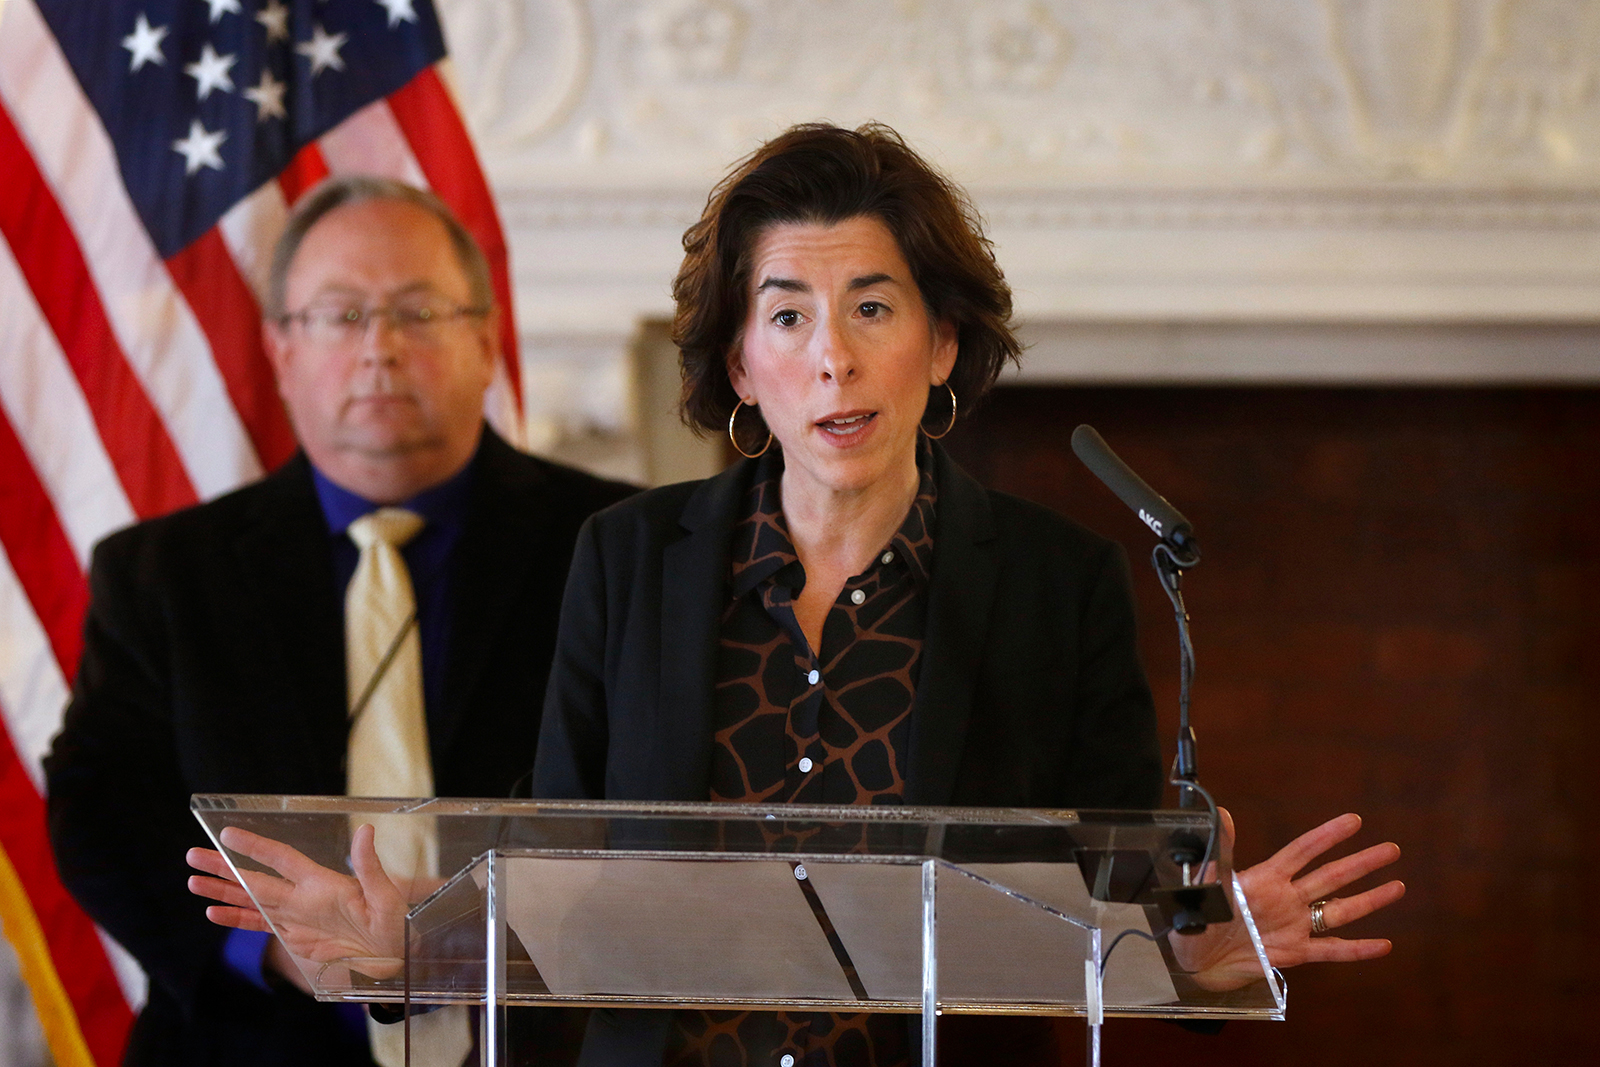 Gov. Gina Raimondo gives an update on the coronavirus during a news conference in this file photo, in Providence, Rhode Island, on March 22.